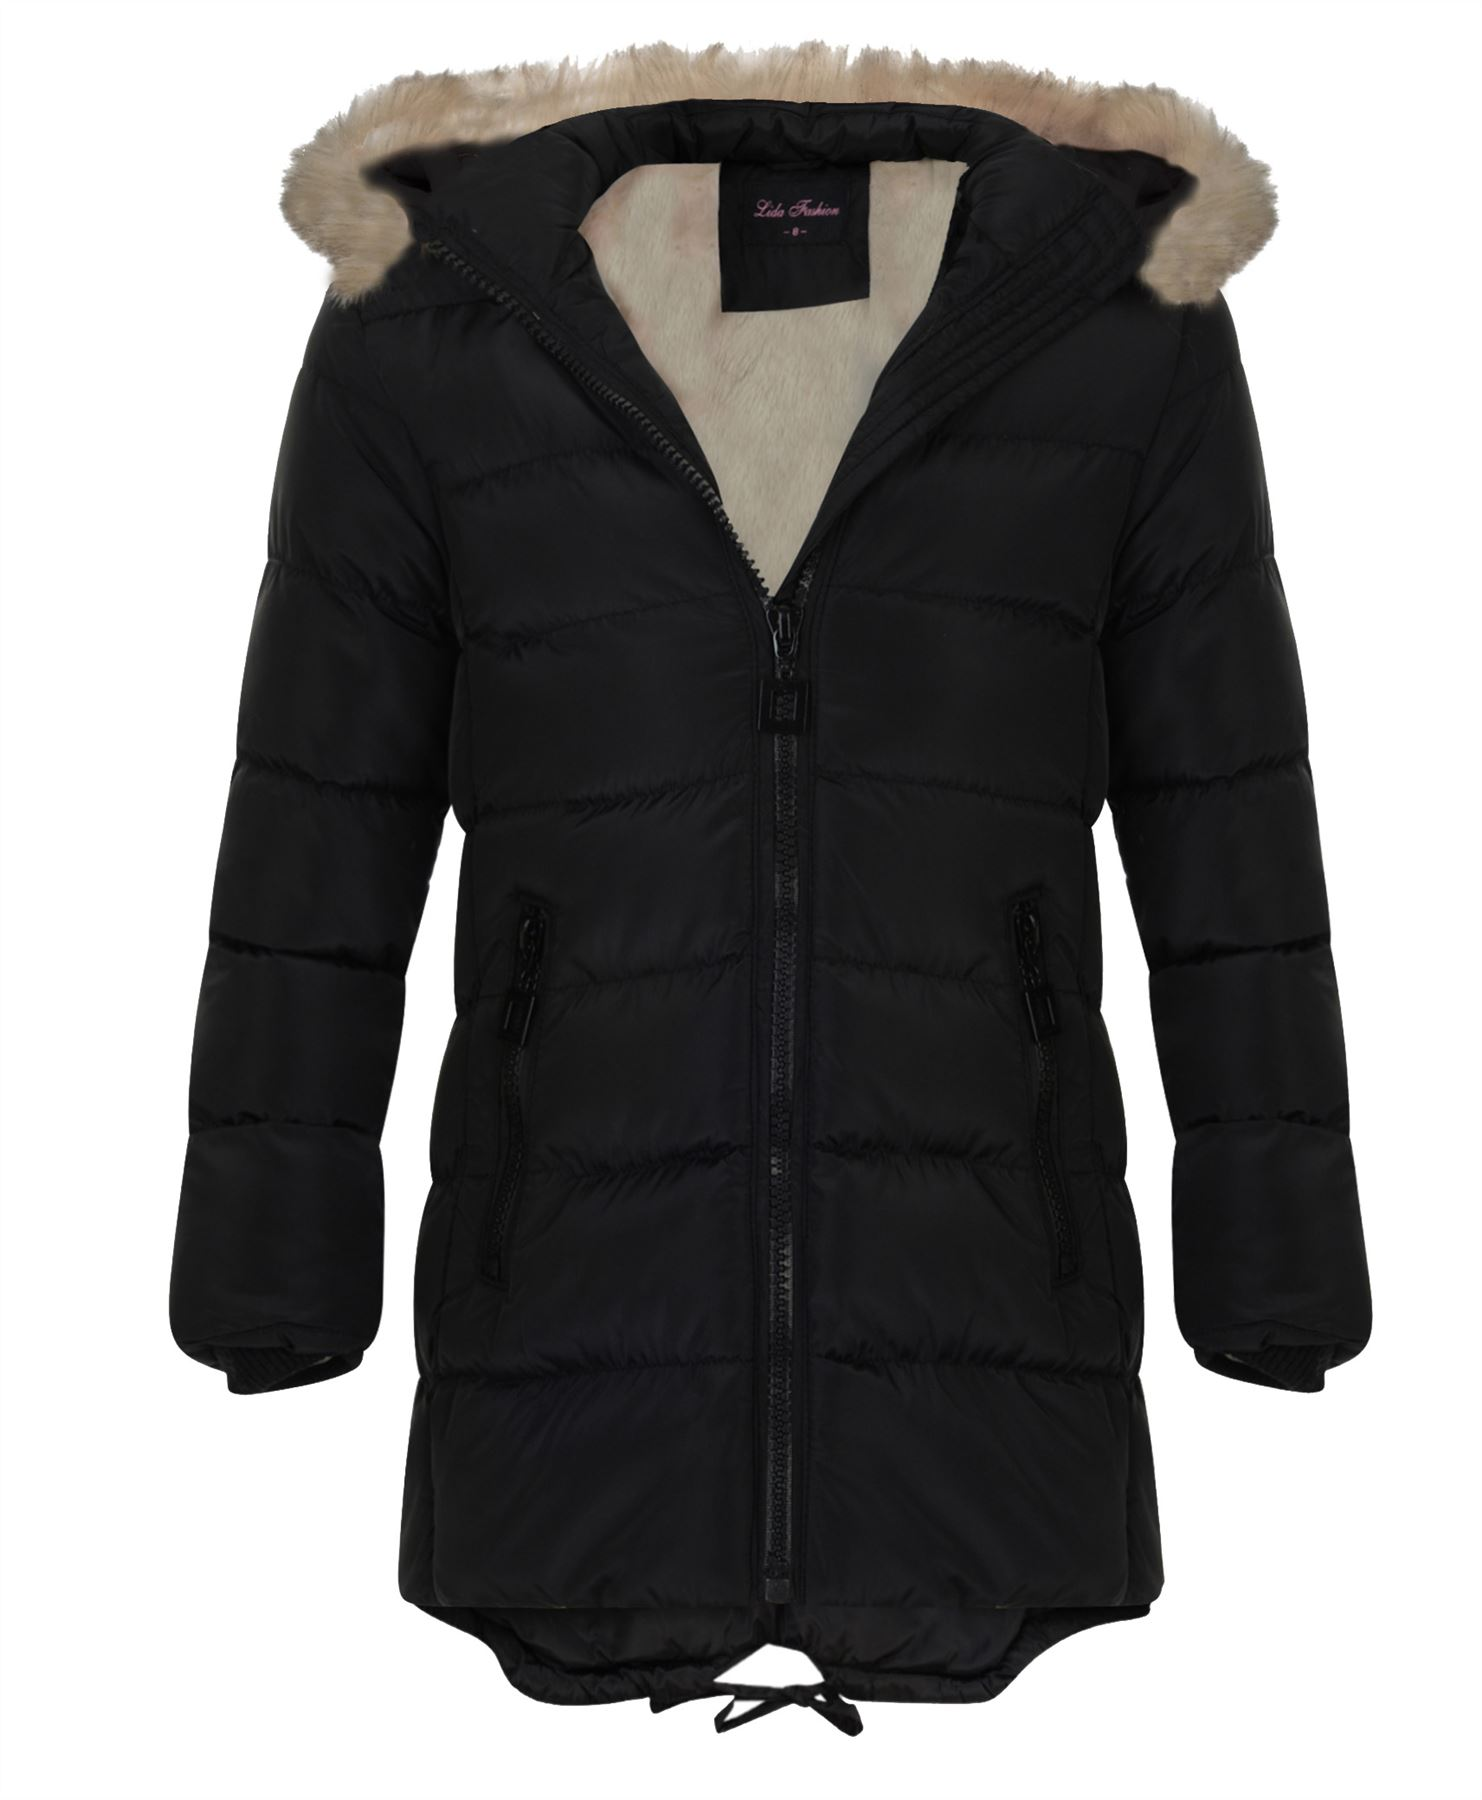 Free shipping BOTH ways on Coats & Outerwear, Girls, from our vast selection of styles. Fast delivery, and 24/7/ real-person service with a smile. Click or call